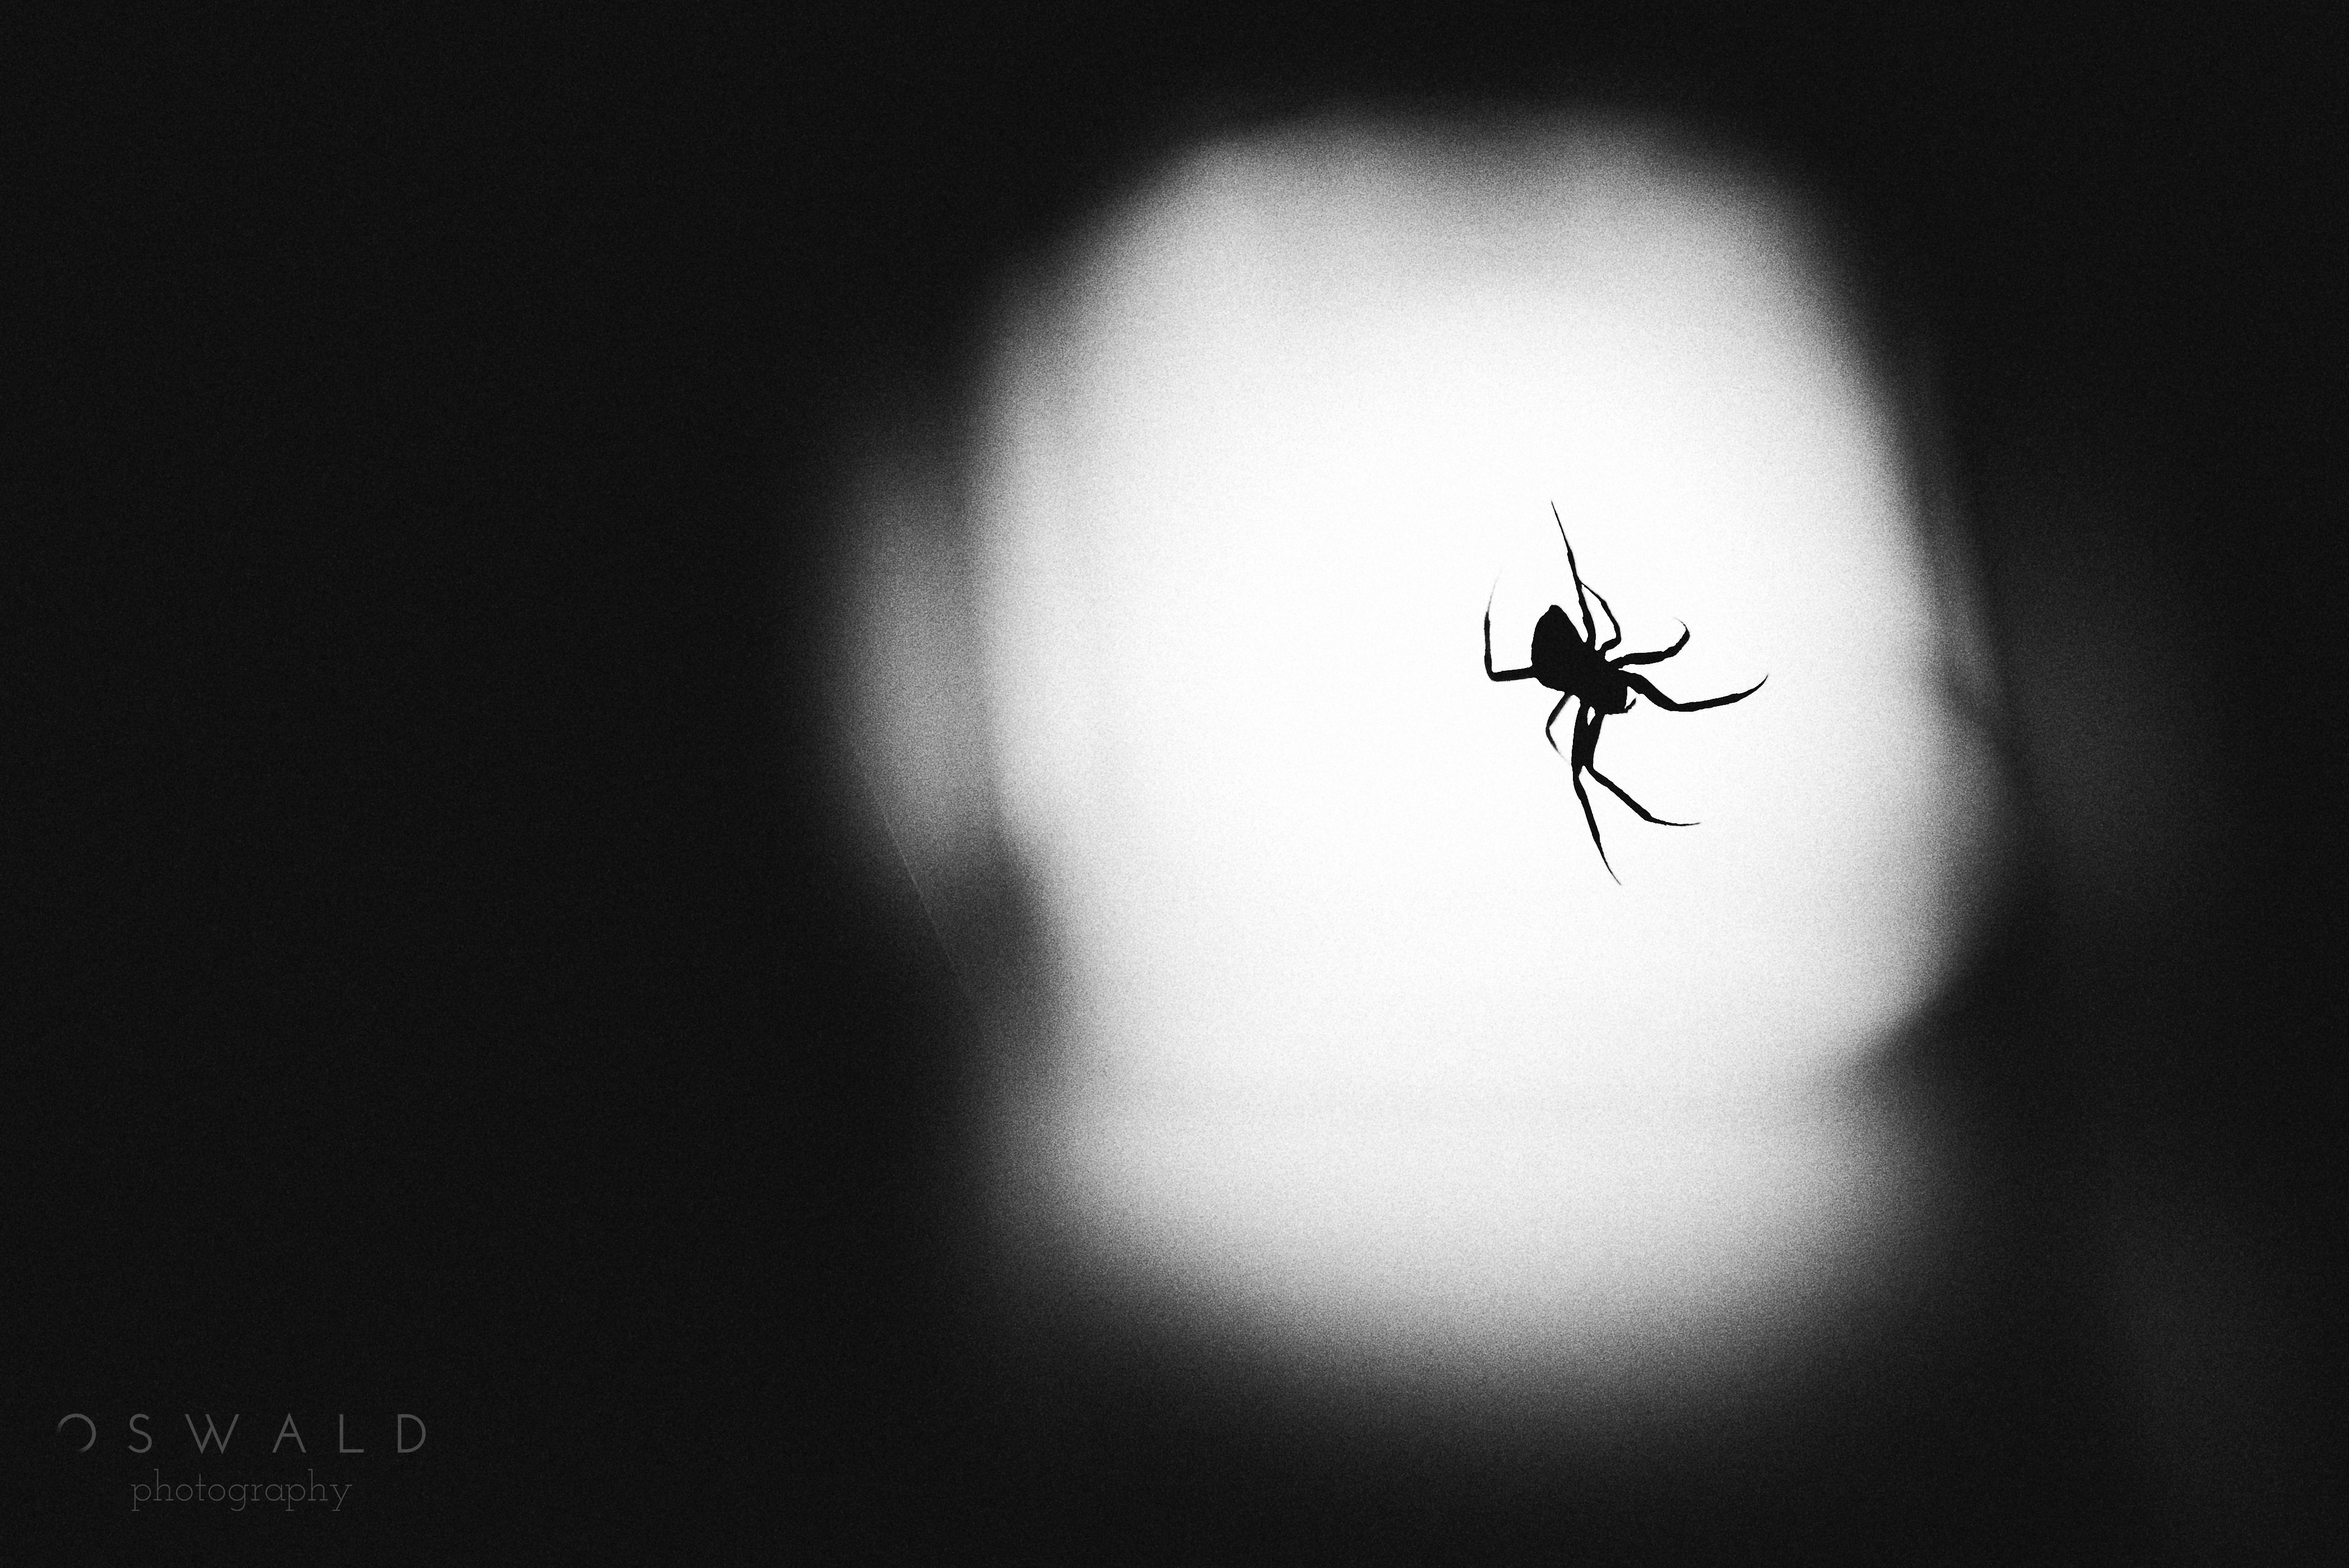 A creepy monochrome photo of a spider spinning its invisible web at night, backlit by a sconce.